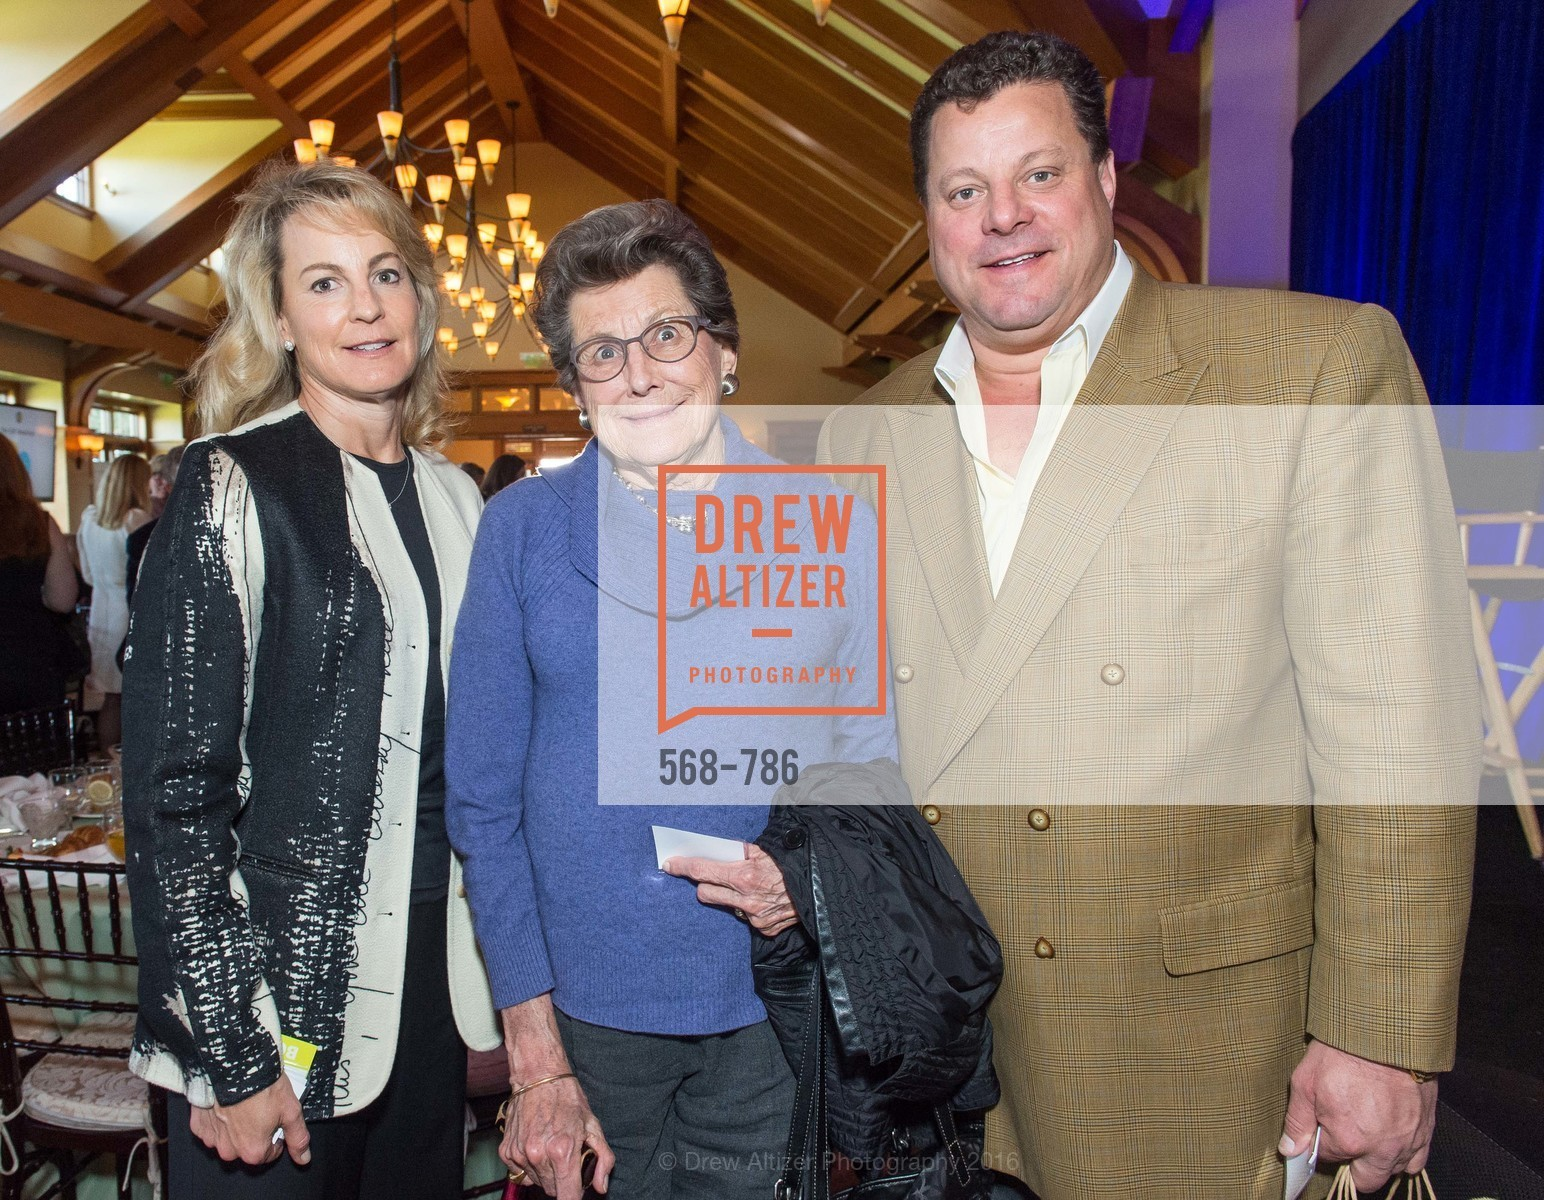 Julie Terrell Hooper, Agnetha Turner, Stephen Turner, The Children's Health Council Breakfast, Sharon Height Golf and Country Club. 900 Sand Hill Rd, February 2nd, 2016,Drew Altizer, Drew Altizer Photography, full-service agency, private events, San Francisco photographer, photographer california